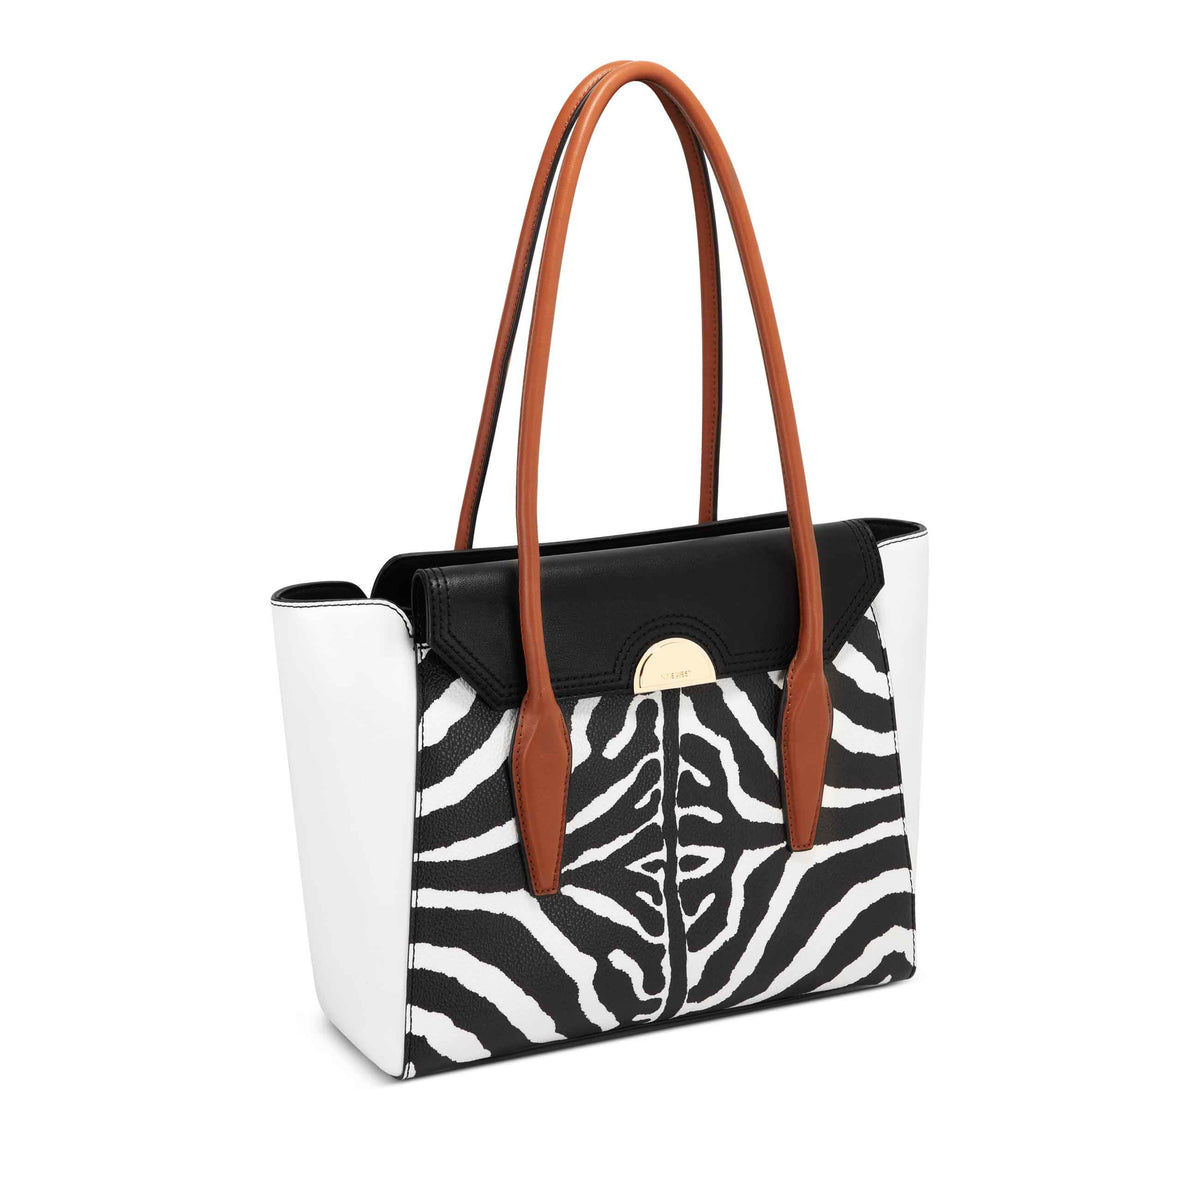 hattie-carryall-in-zebra